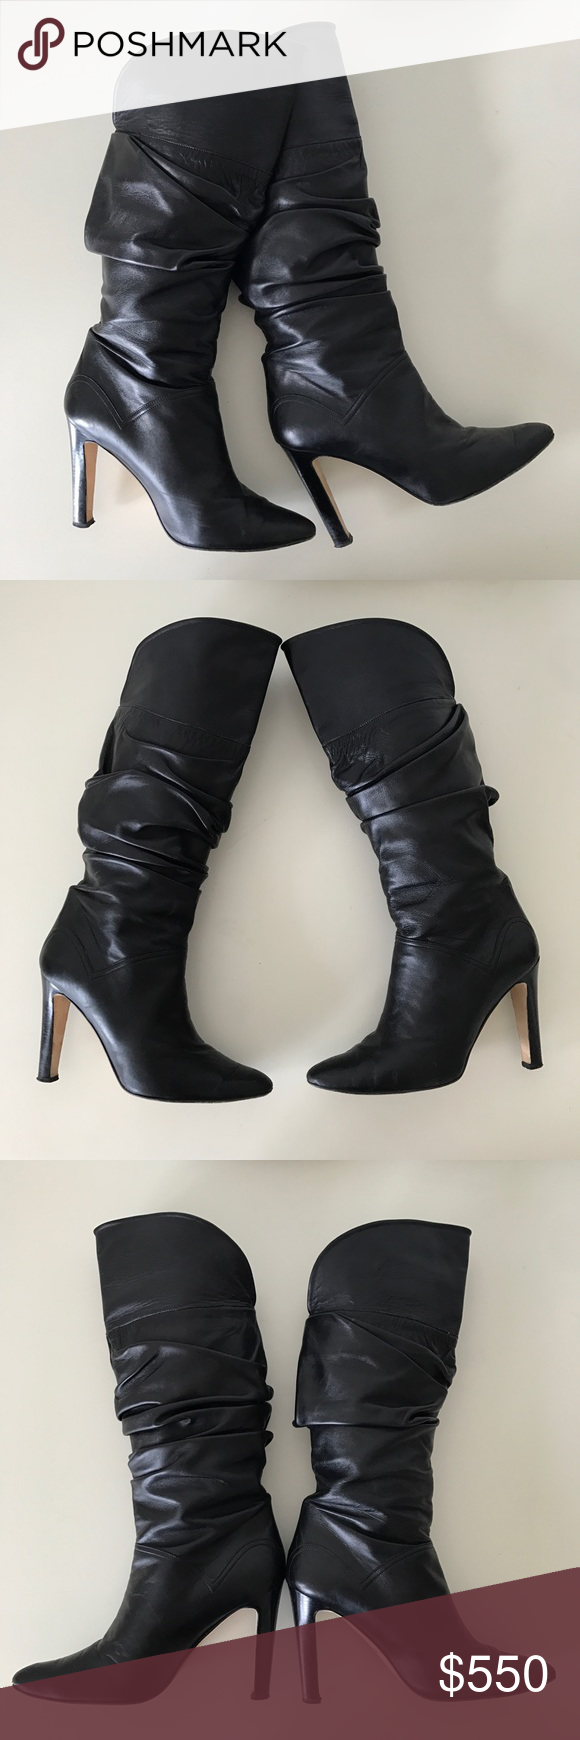 "Manolo Blahnik Ruched Black Leather Boots SZ 38.5 Beautiful and stylish! Gently worn with slight creasing at the toe which is not noticeable when the boots are on. Ruched, black Leather, leather soles and insoles. Could be worn folded over at the top (mid calf height about 15"" from heel to top) or unfolded(tall about 18"" from heel to top). Almond toe, pull-on style, 4"" covered heel. Size 38.5 Retail price: $1,650 plus TAX. Manolo Blahnik Shoes Heeled Boots"